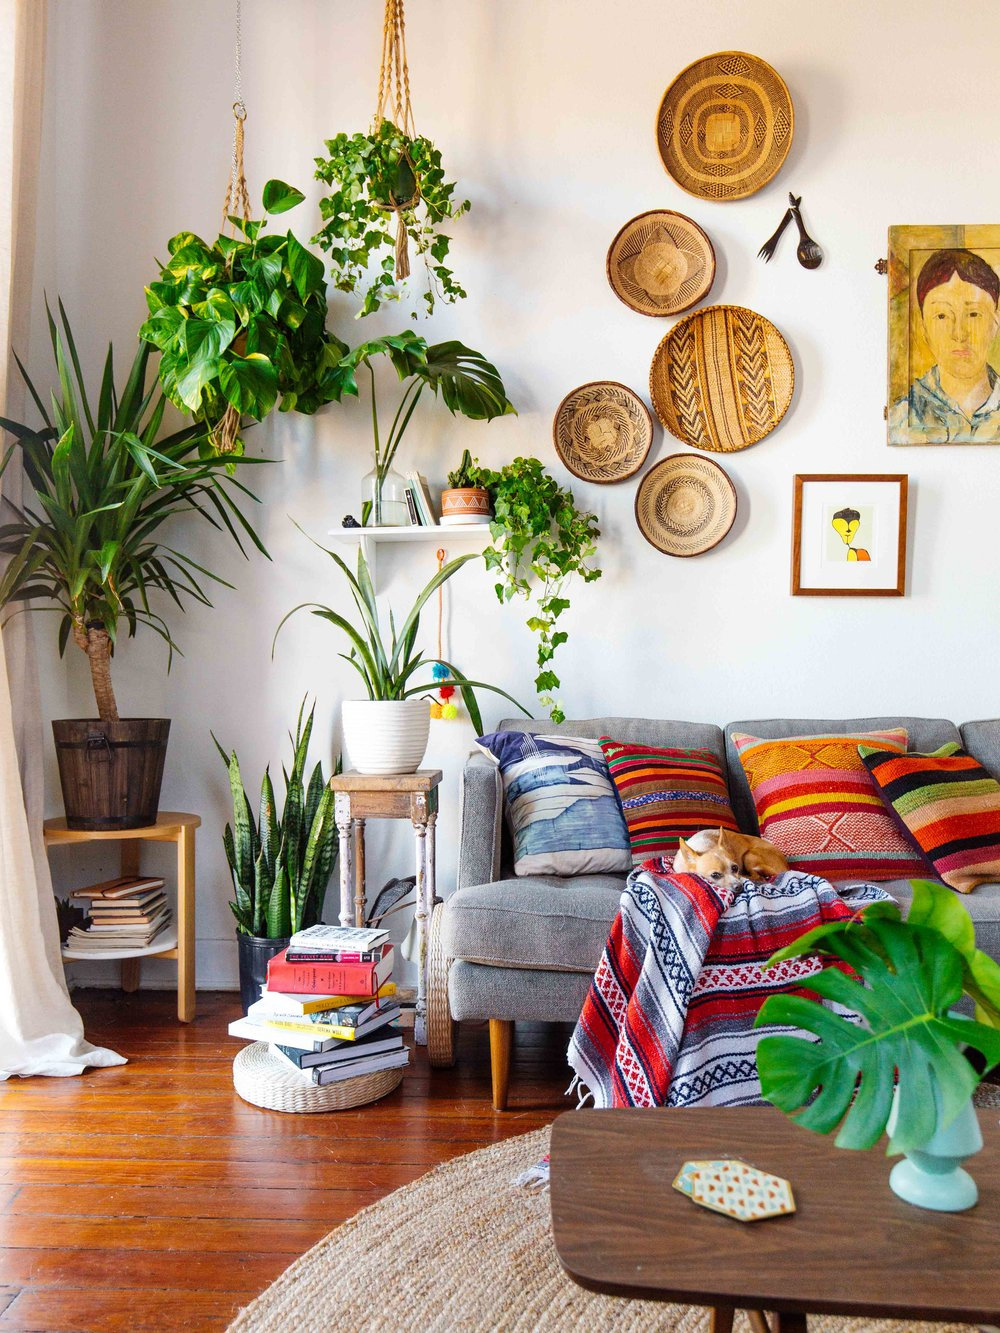 Plants and textured pillows in a tropical living room